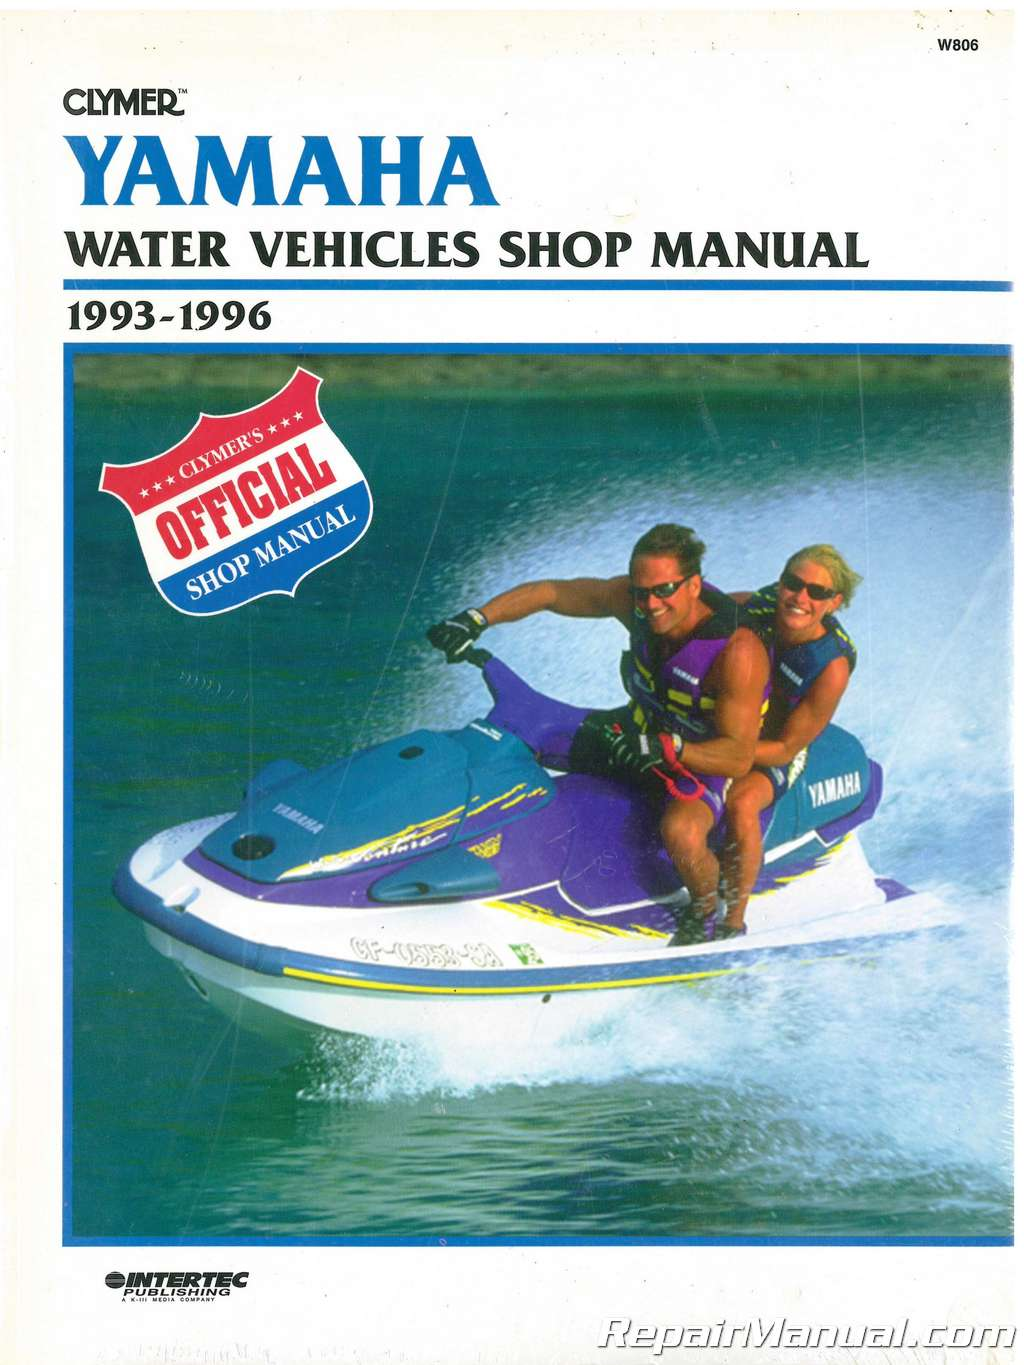 Yamaha Waverunner Schematics 96 Iii Service Manual Used 1993 1996 Clymer Personal Watercraft Rh Repairmanual Com Raider Wave Specs